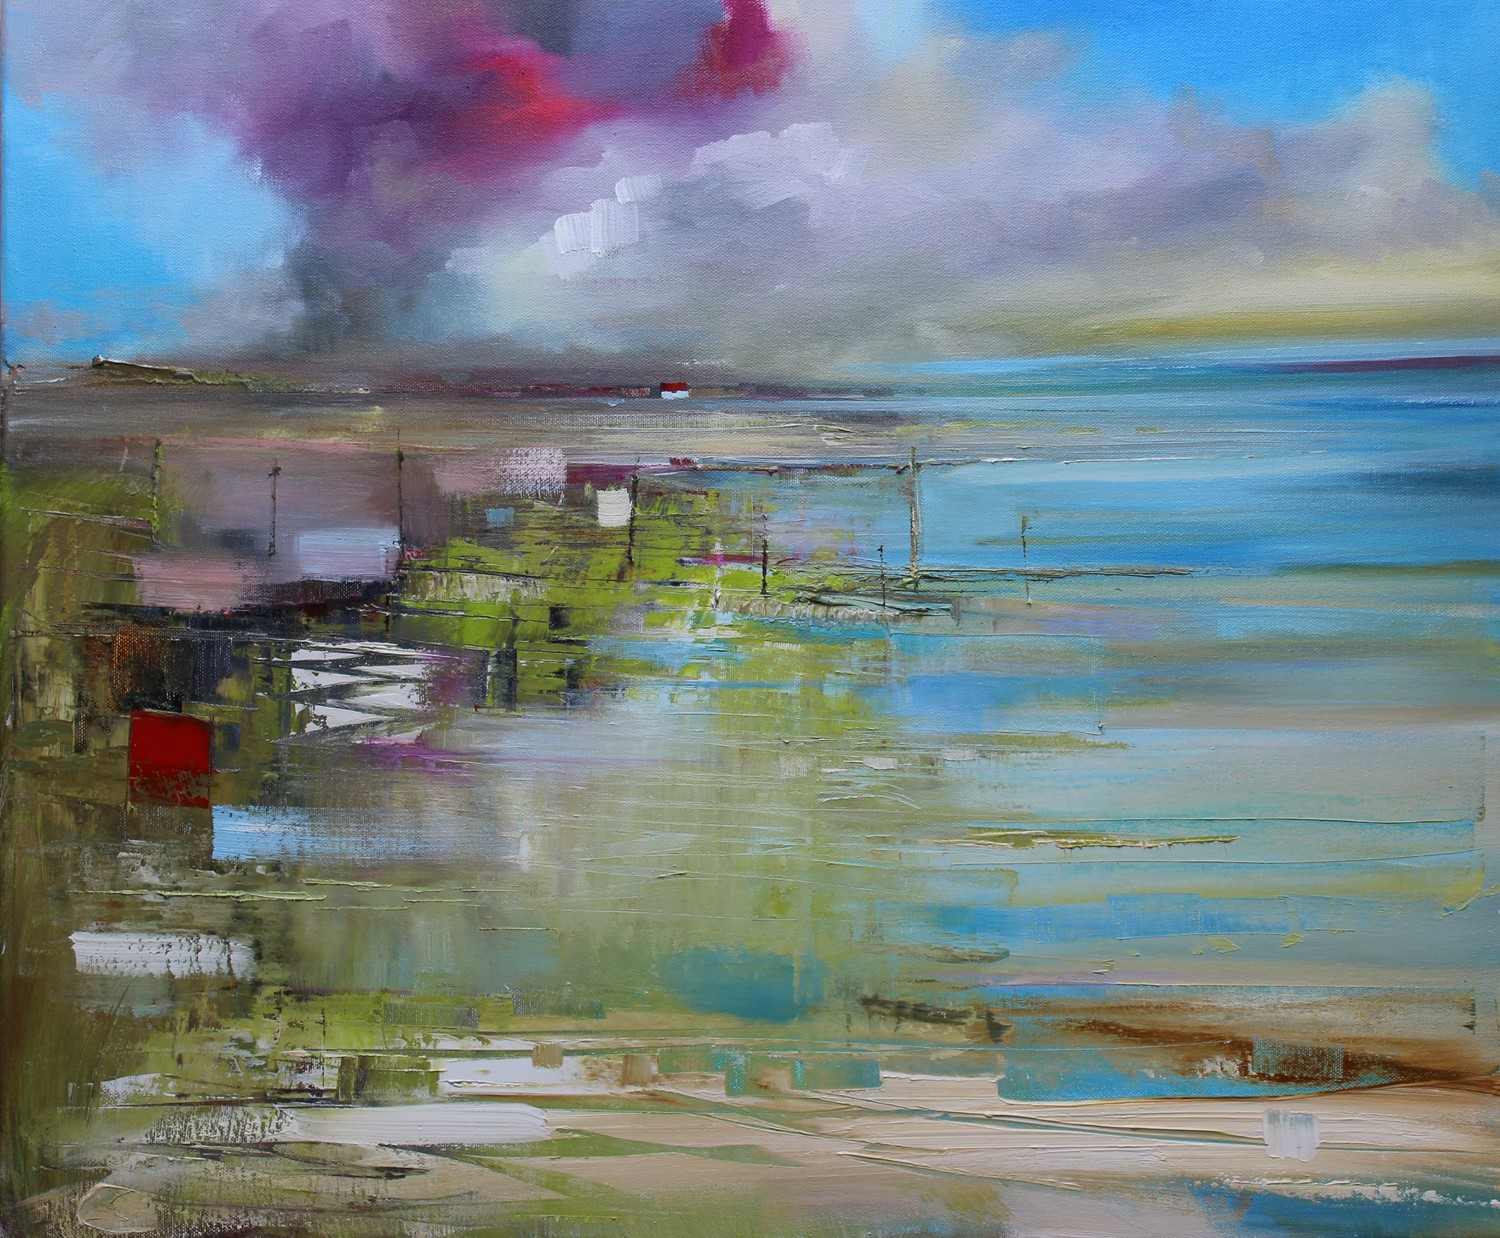 'An East Coast Neuk' by artist Rosanne Barr